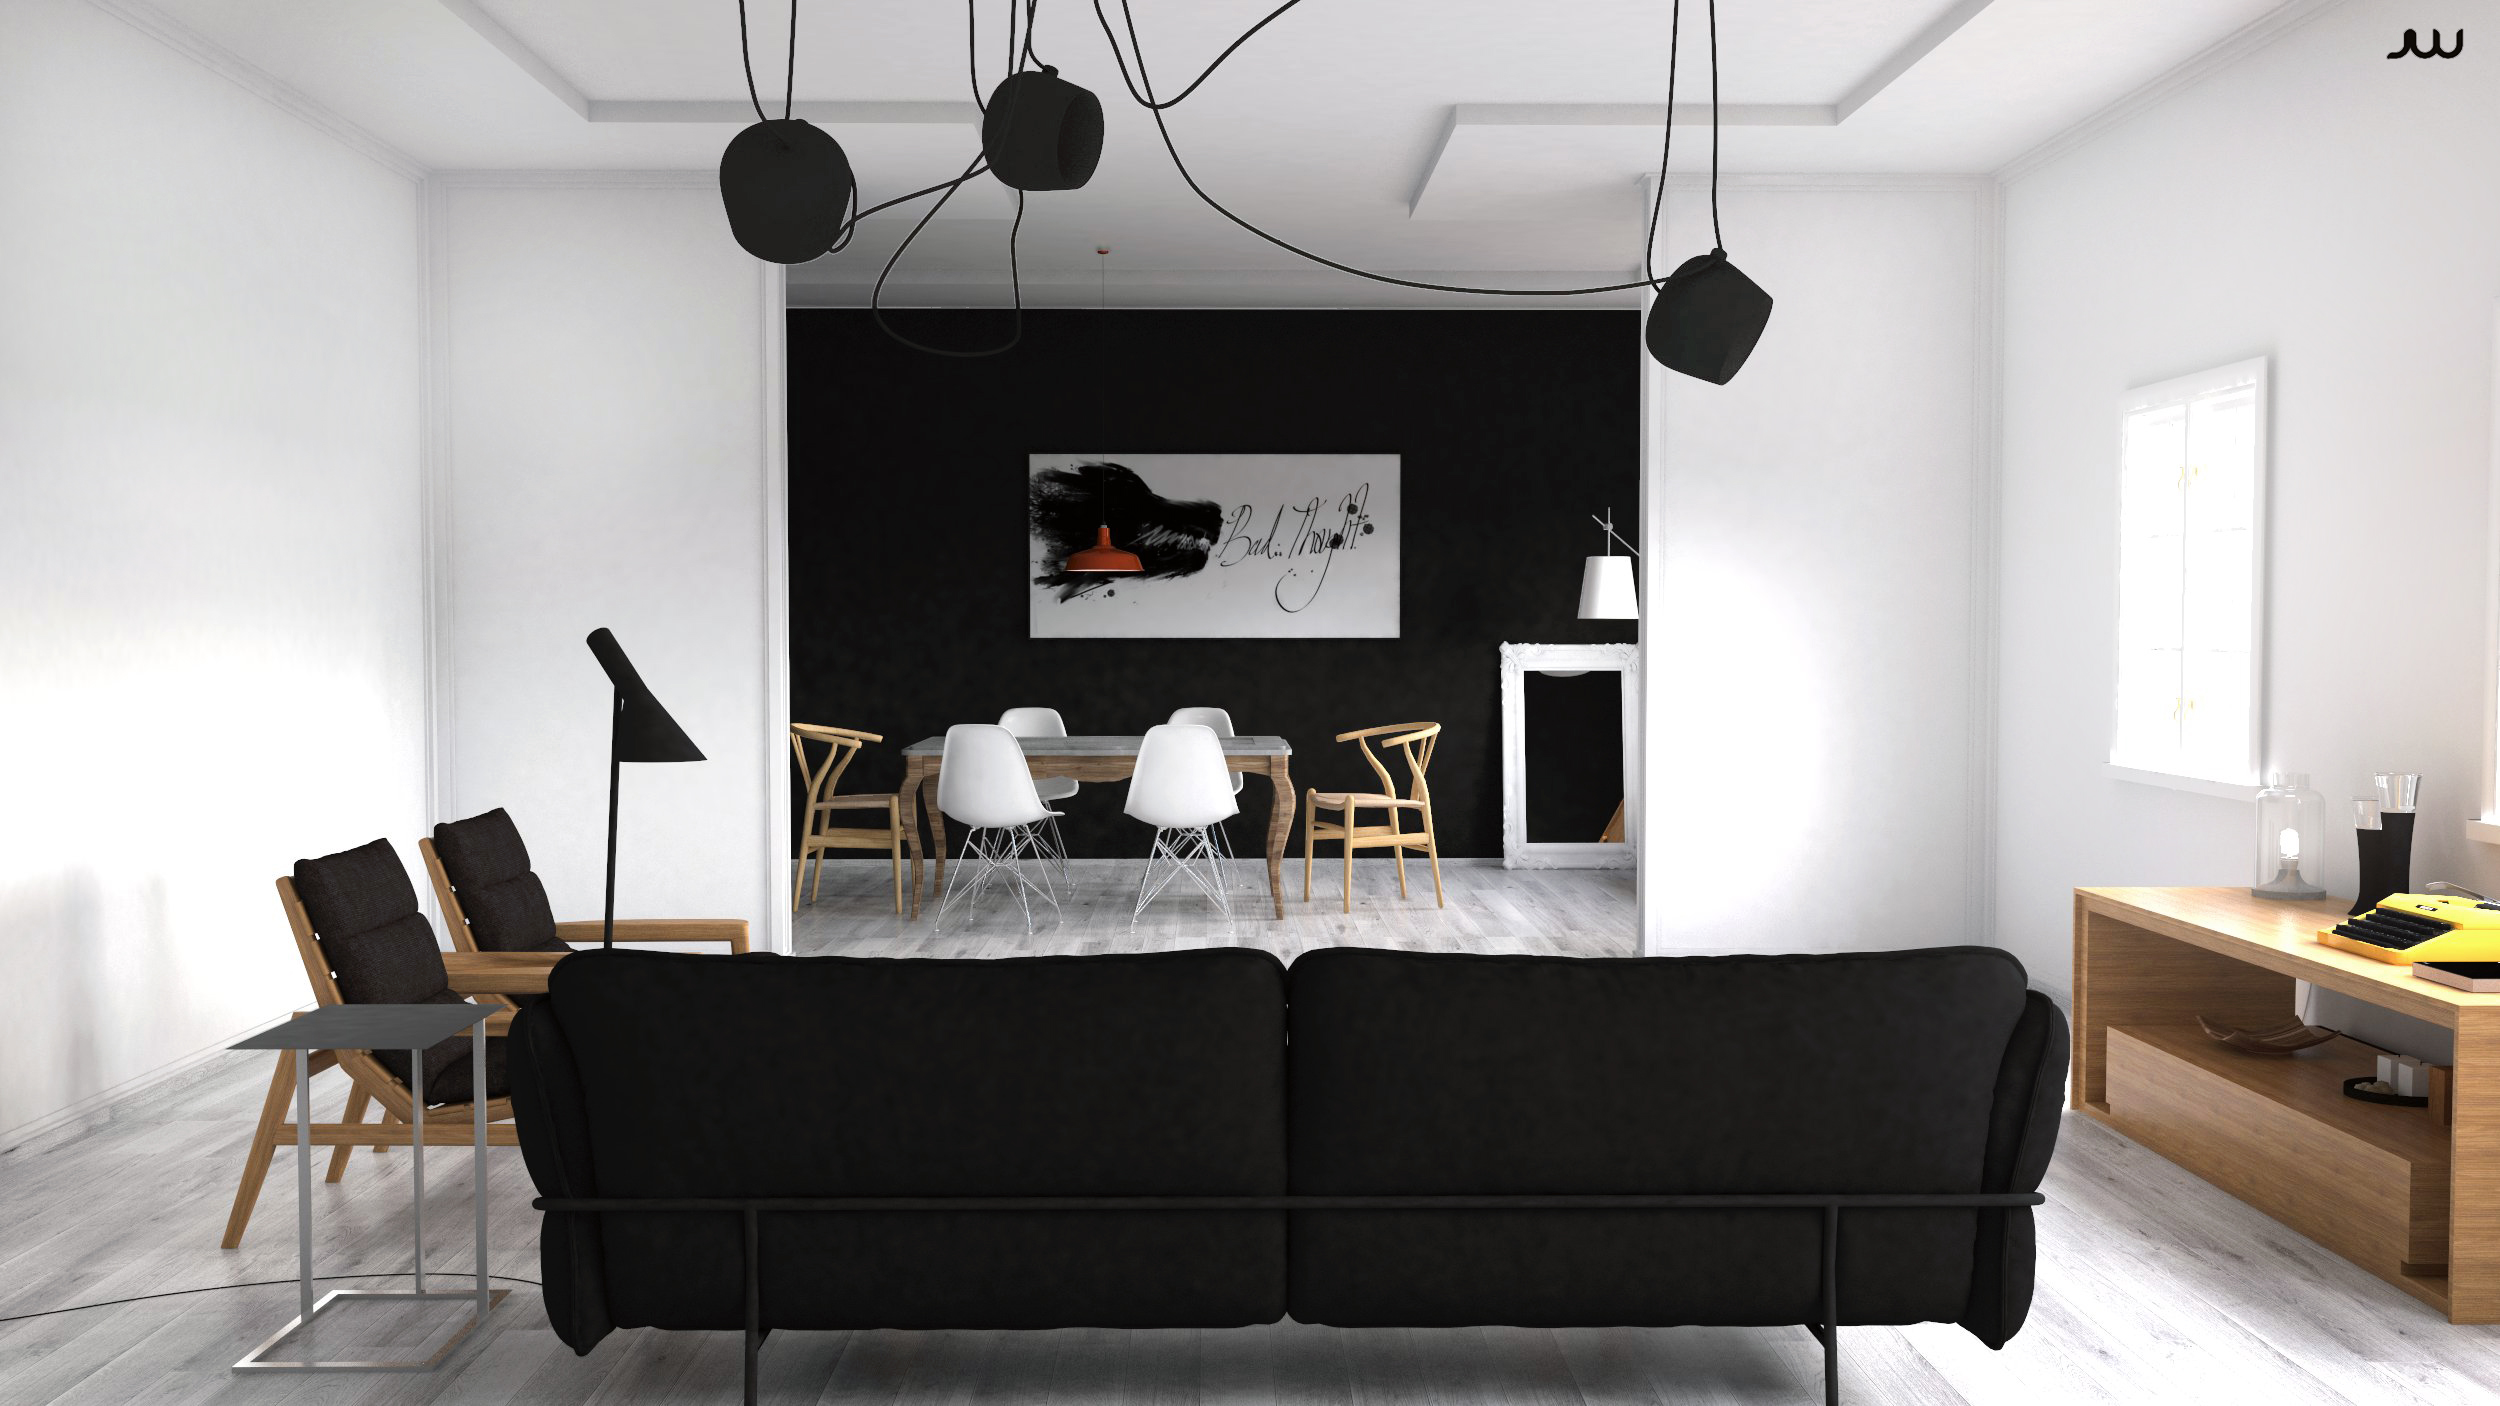 Making of scandinavian interior with Sketchup, Vray and